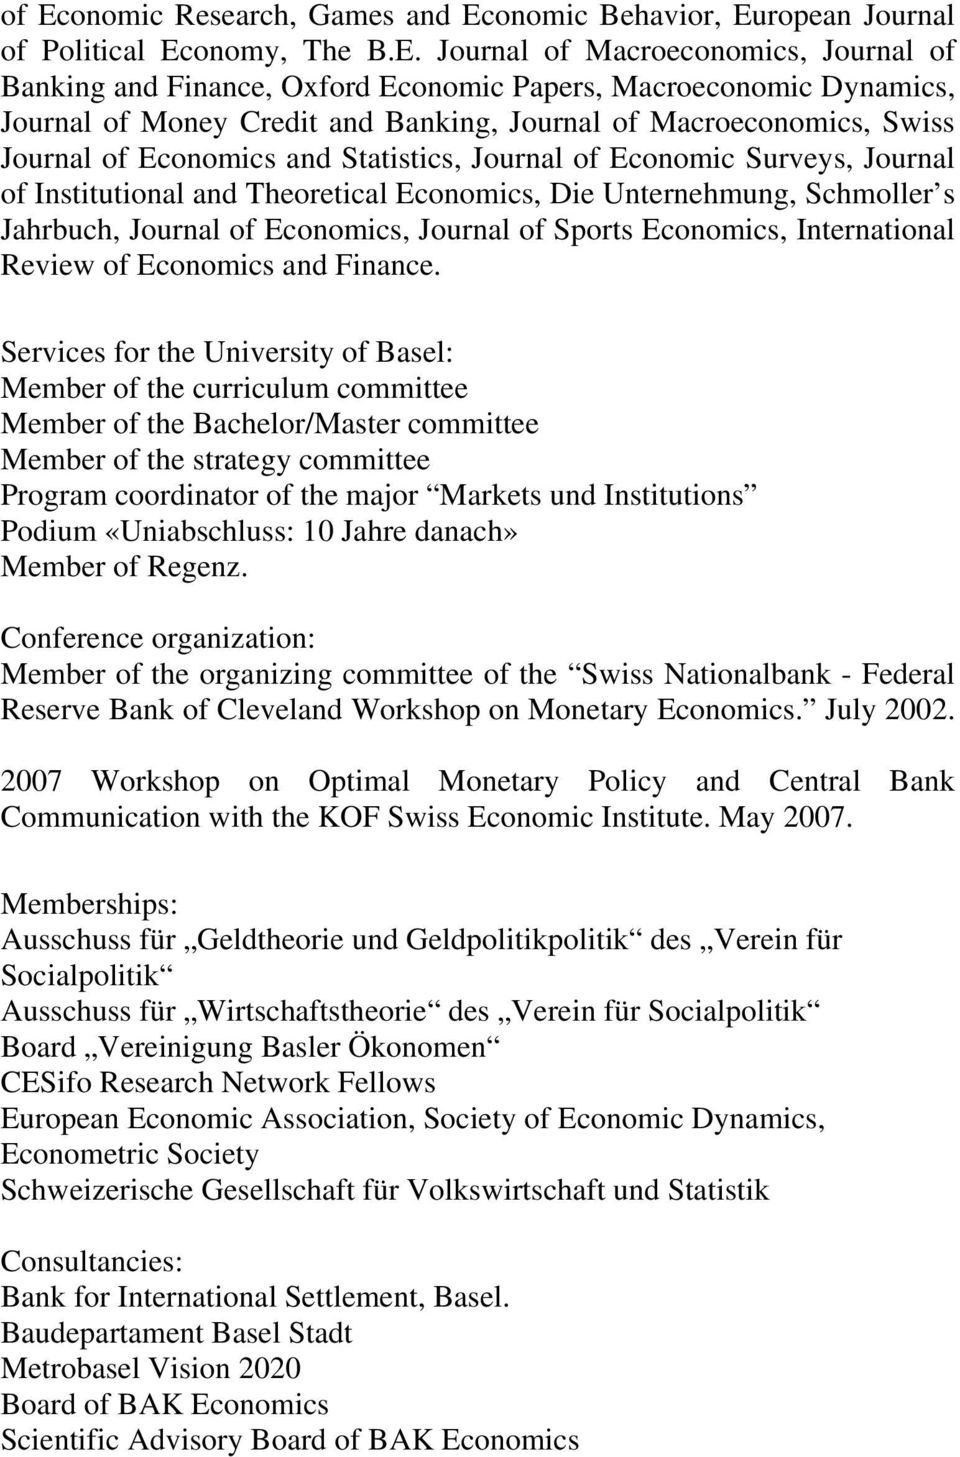 Die Unternehmung, Schmoller s Jahrbuch, Journal of Economics, Journal of Sports Economics, International Review of Economics and Finance.